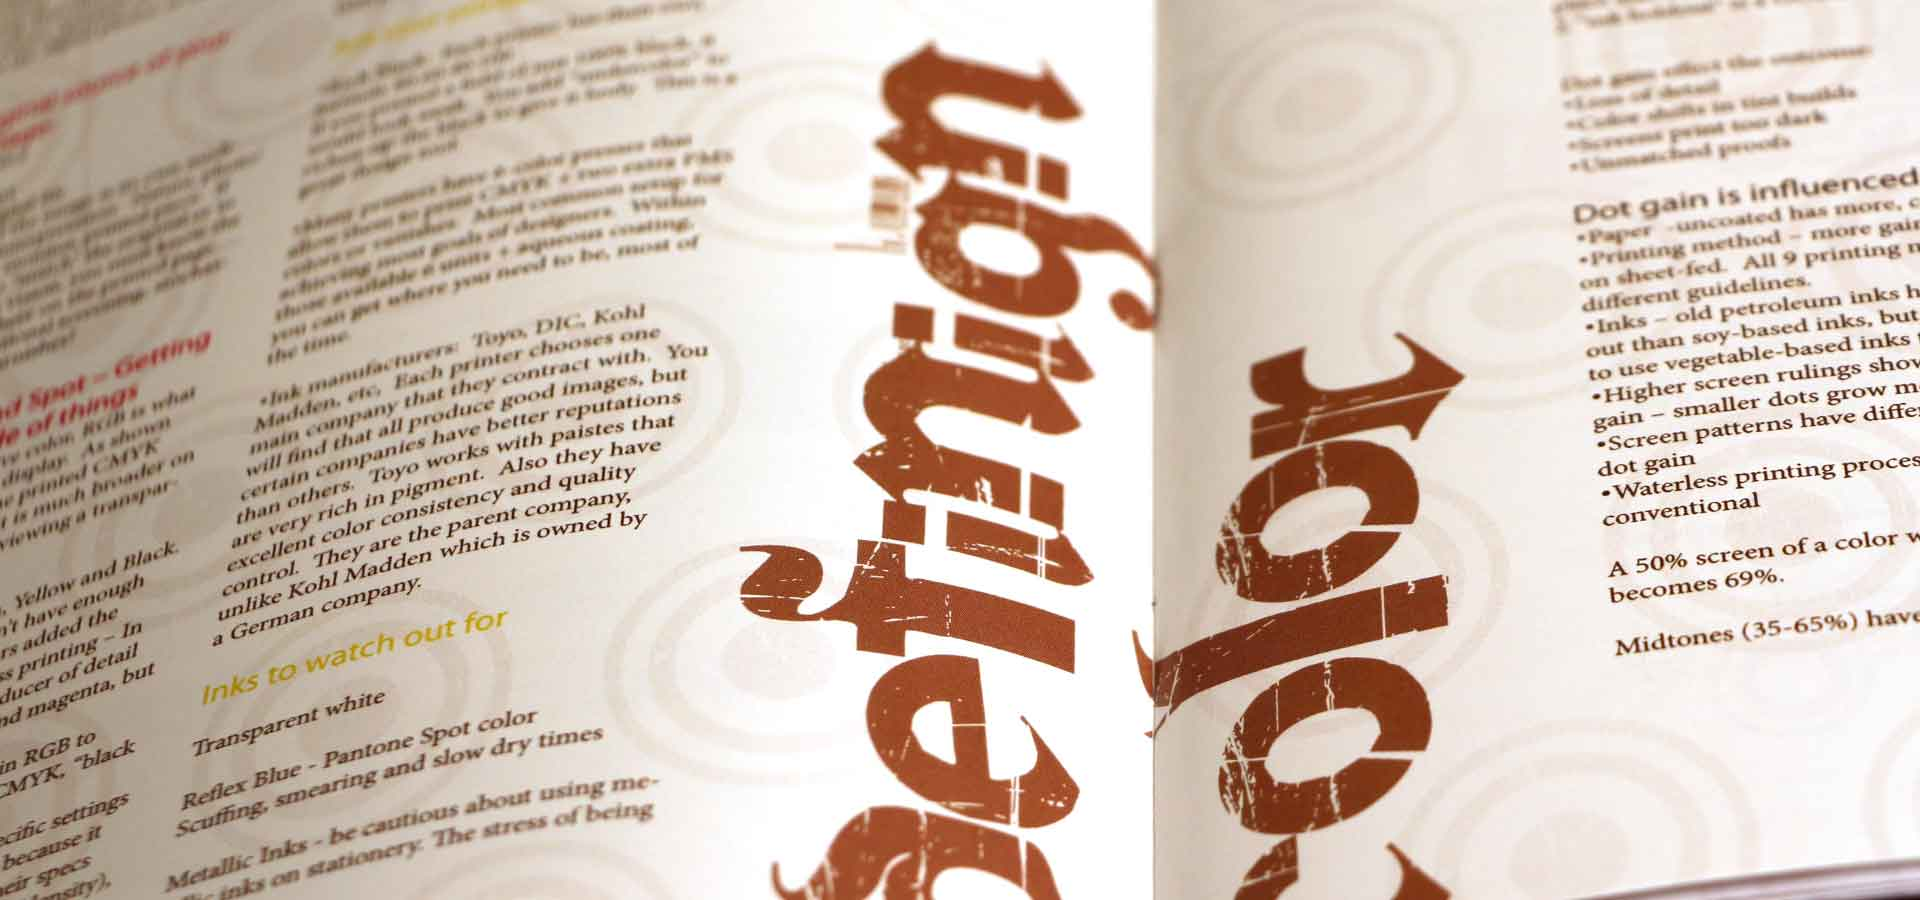 The Art of Printing Publication Design